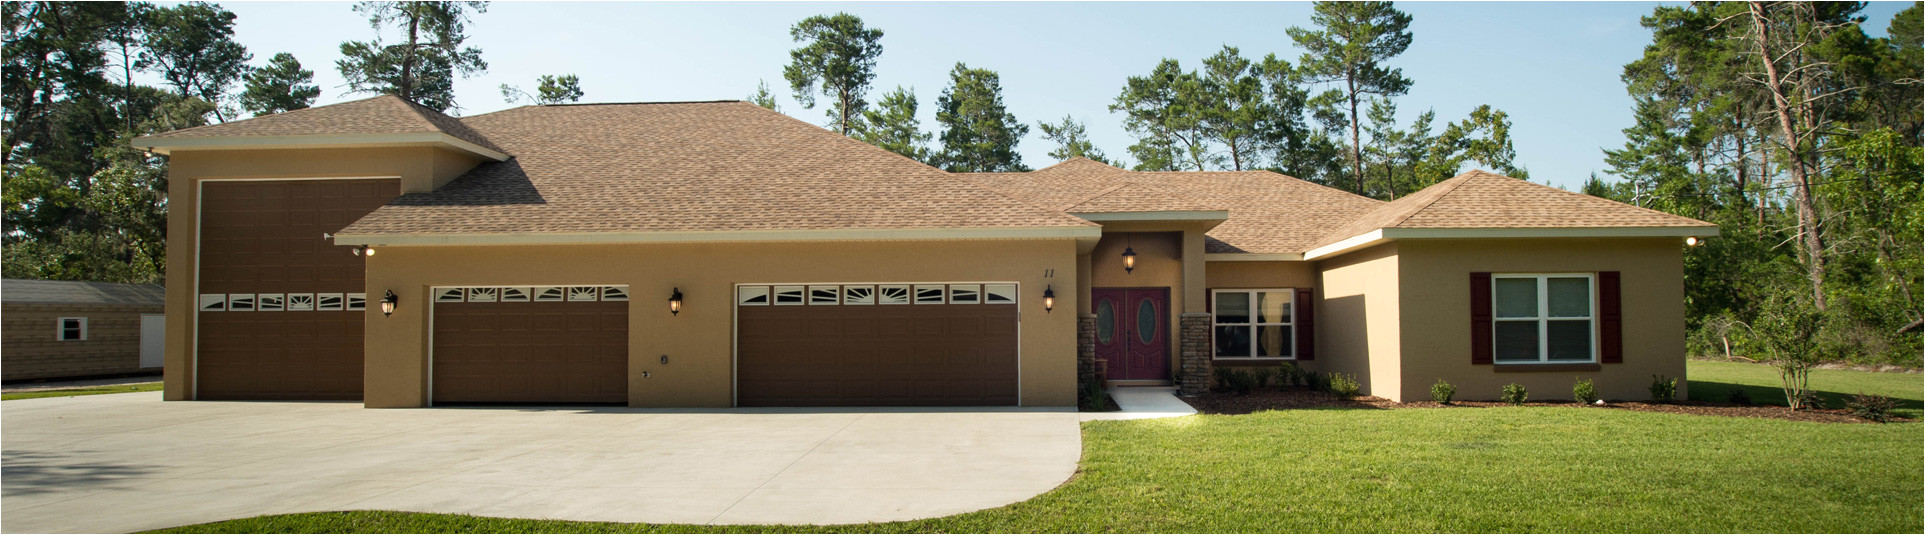 house plans with attached rv garage